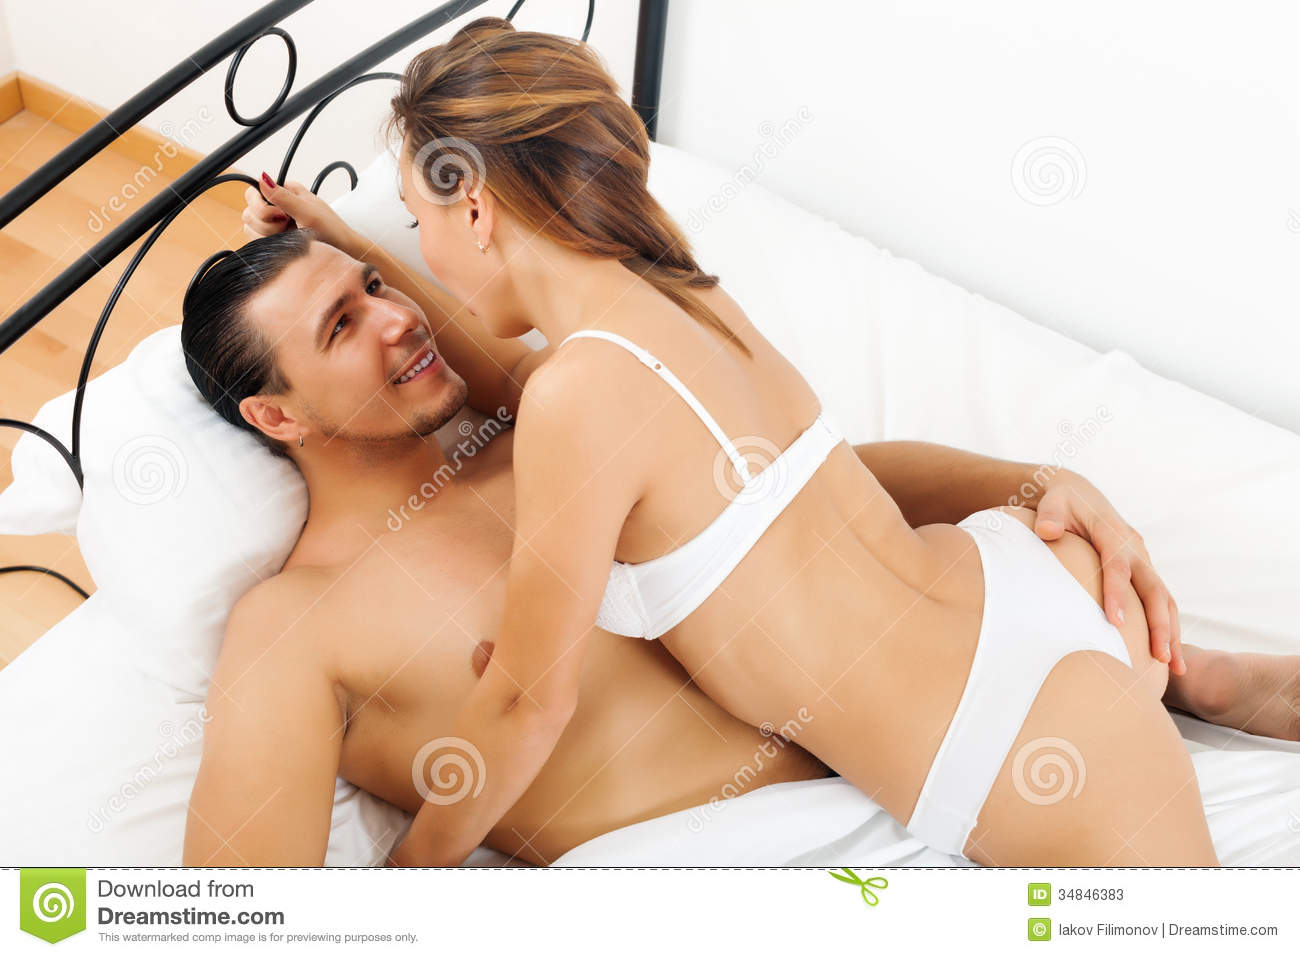 Men and woman who are having sex